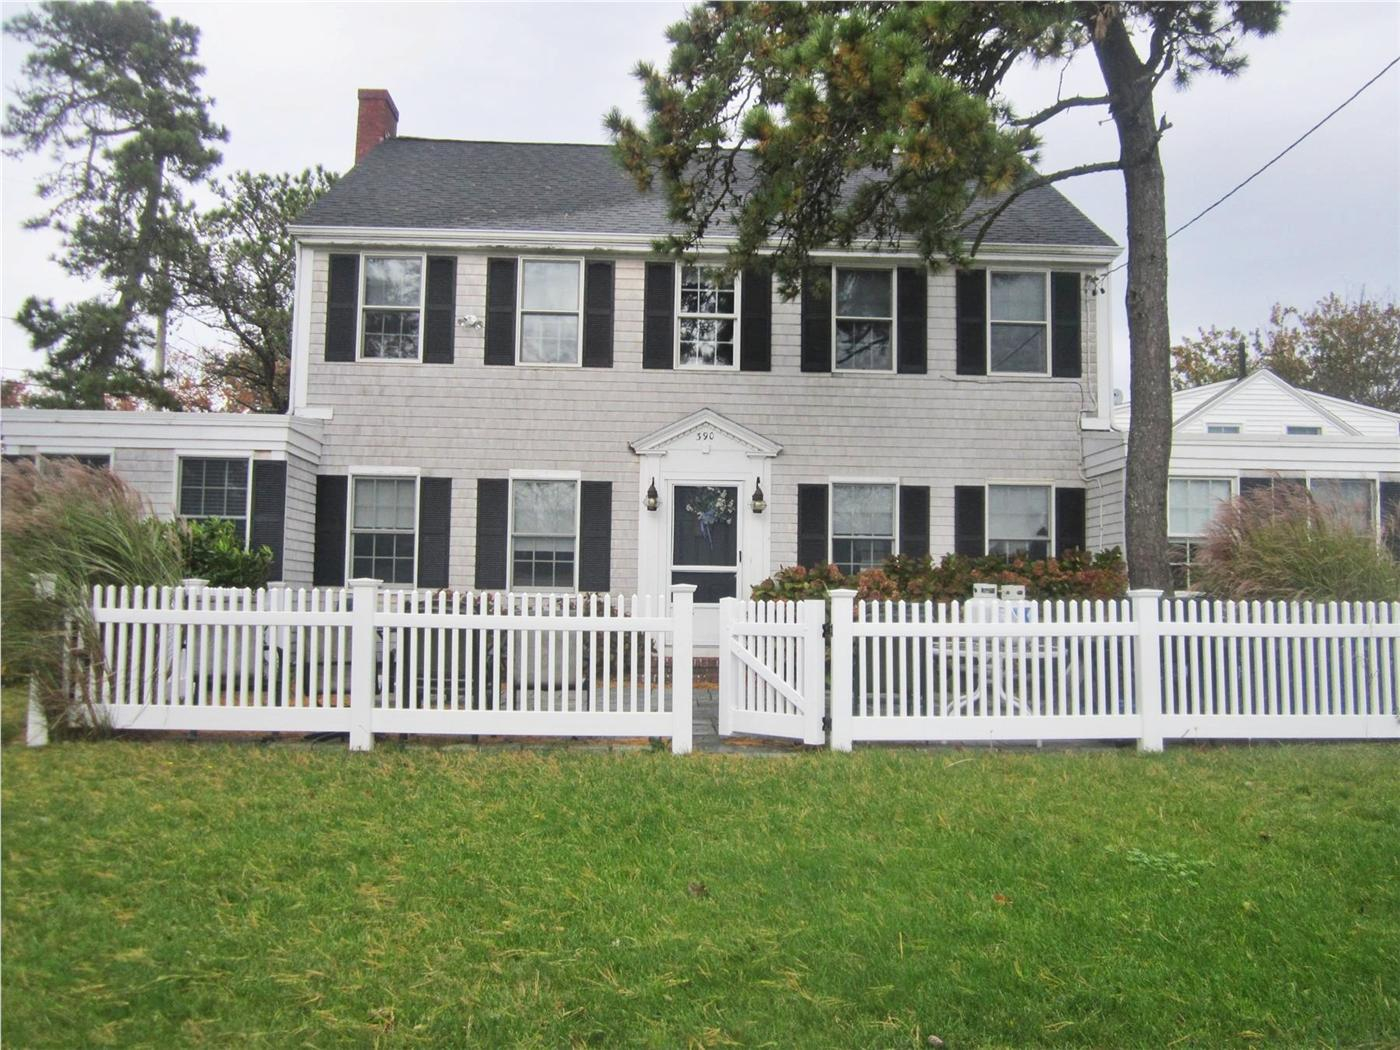 Dennis Vacation Rental Home In Cape Cod Ma 02639 100 Yards Id 6401 in dimensions 1400 X 1050